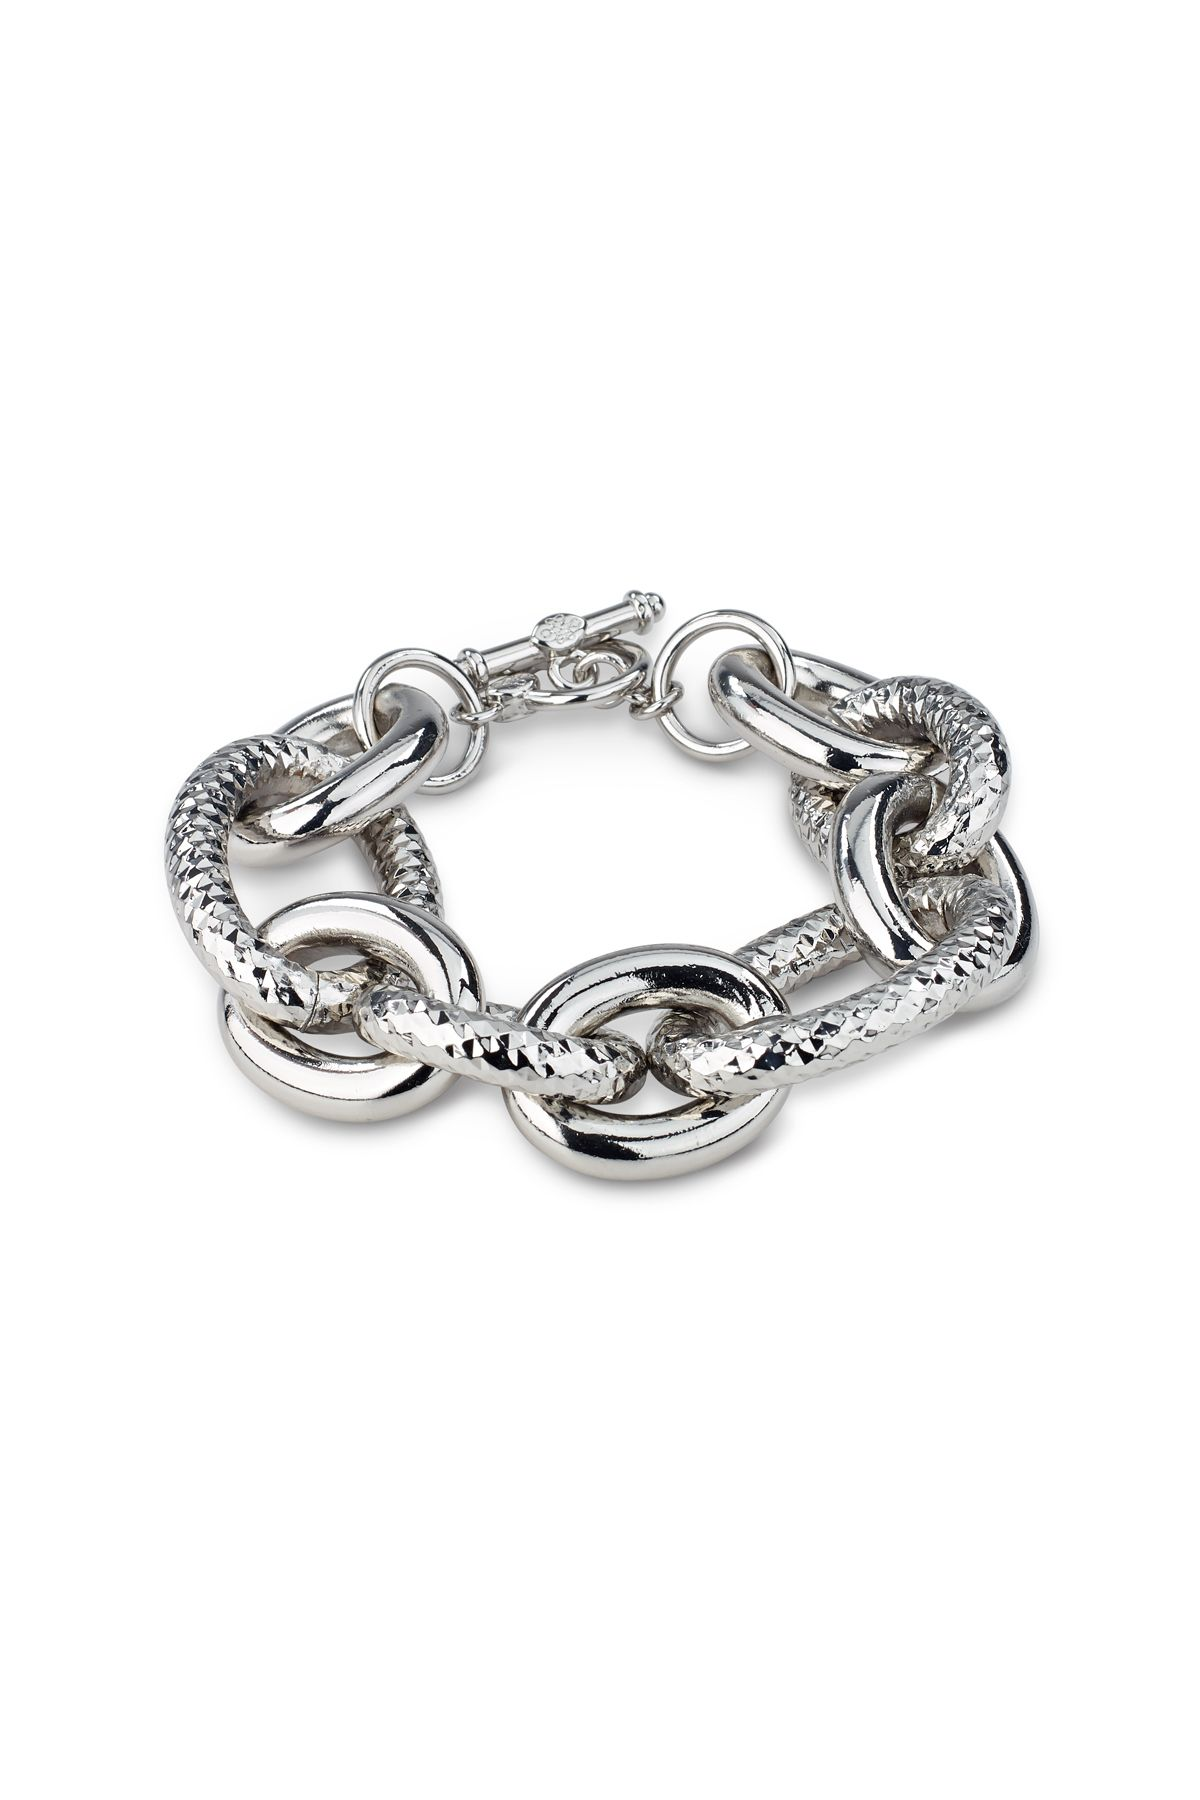 A toggle bracelet with a combination of large and medium